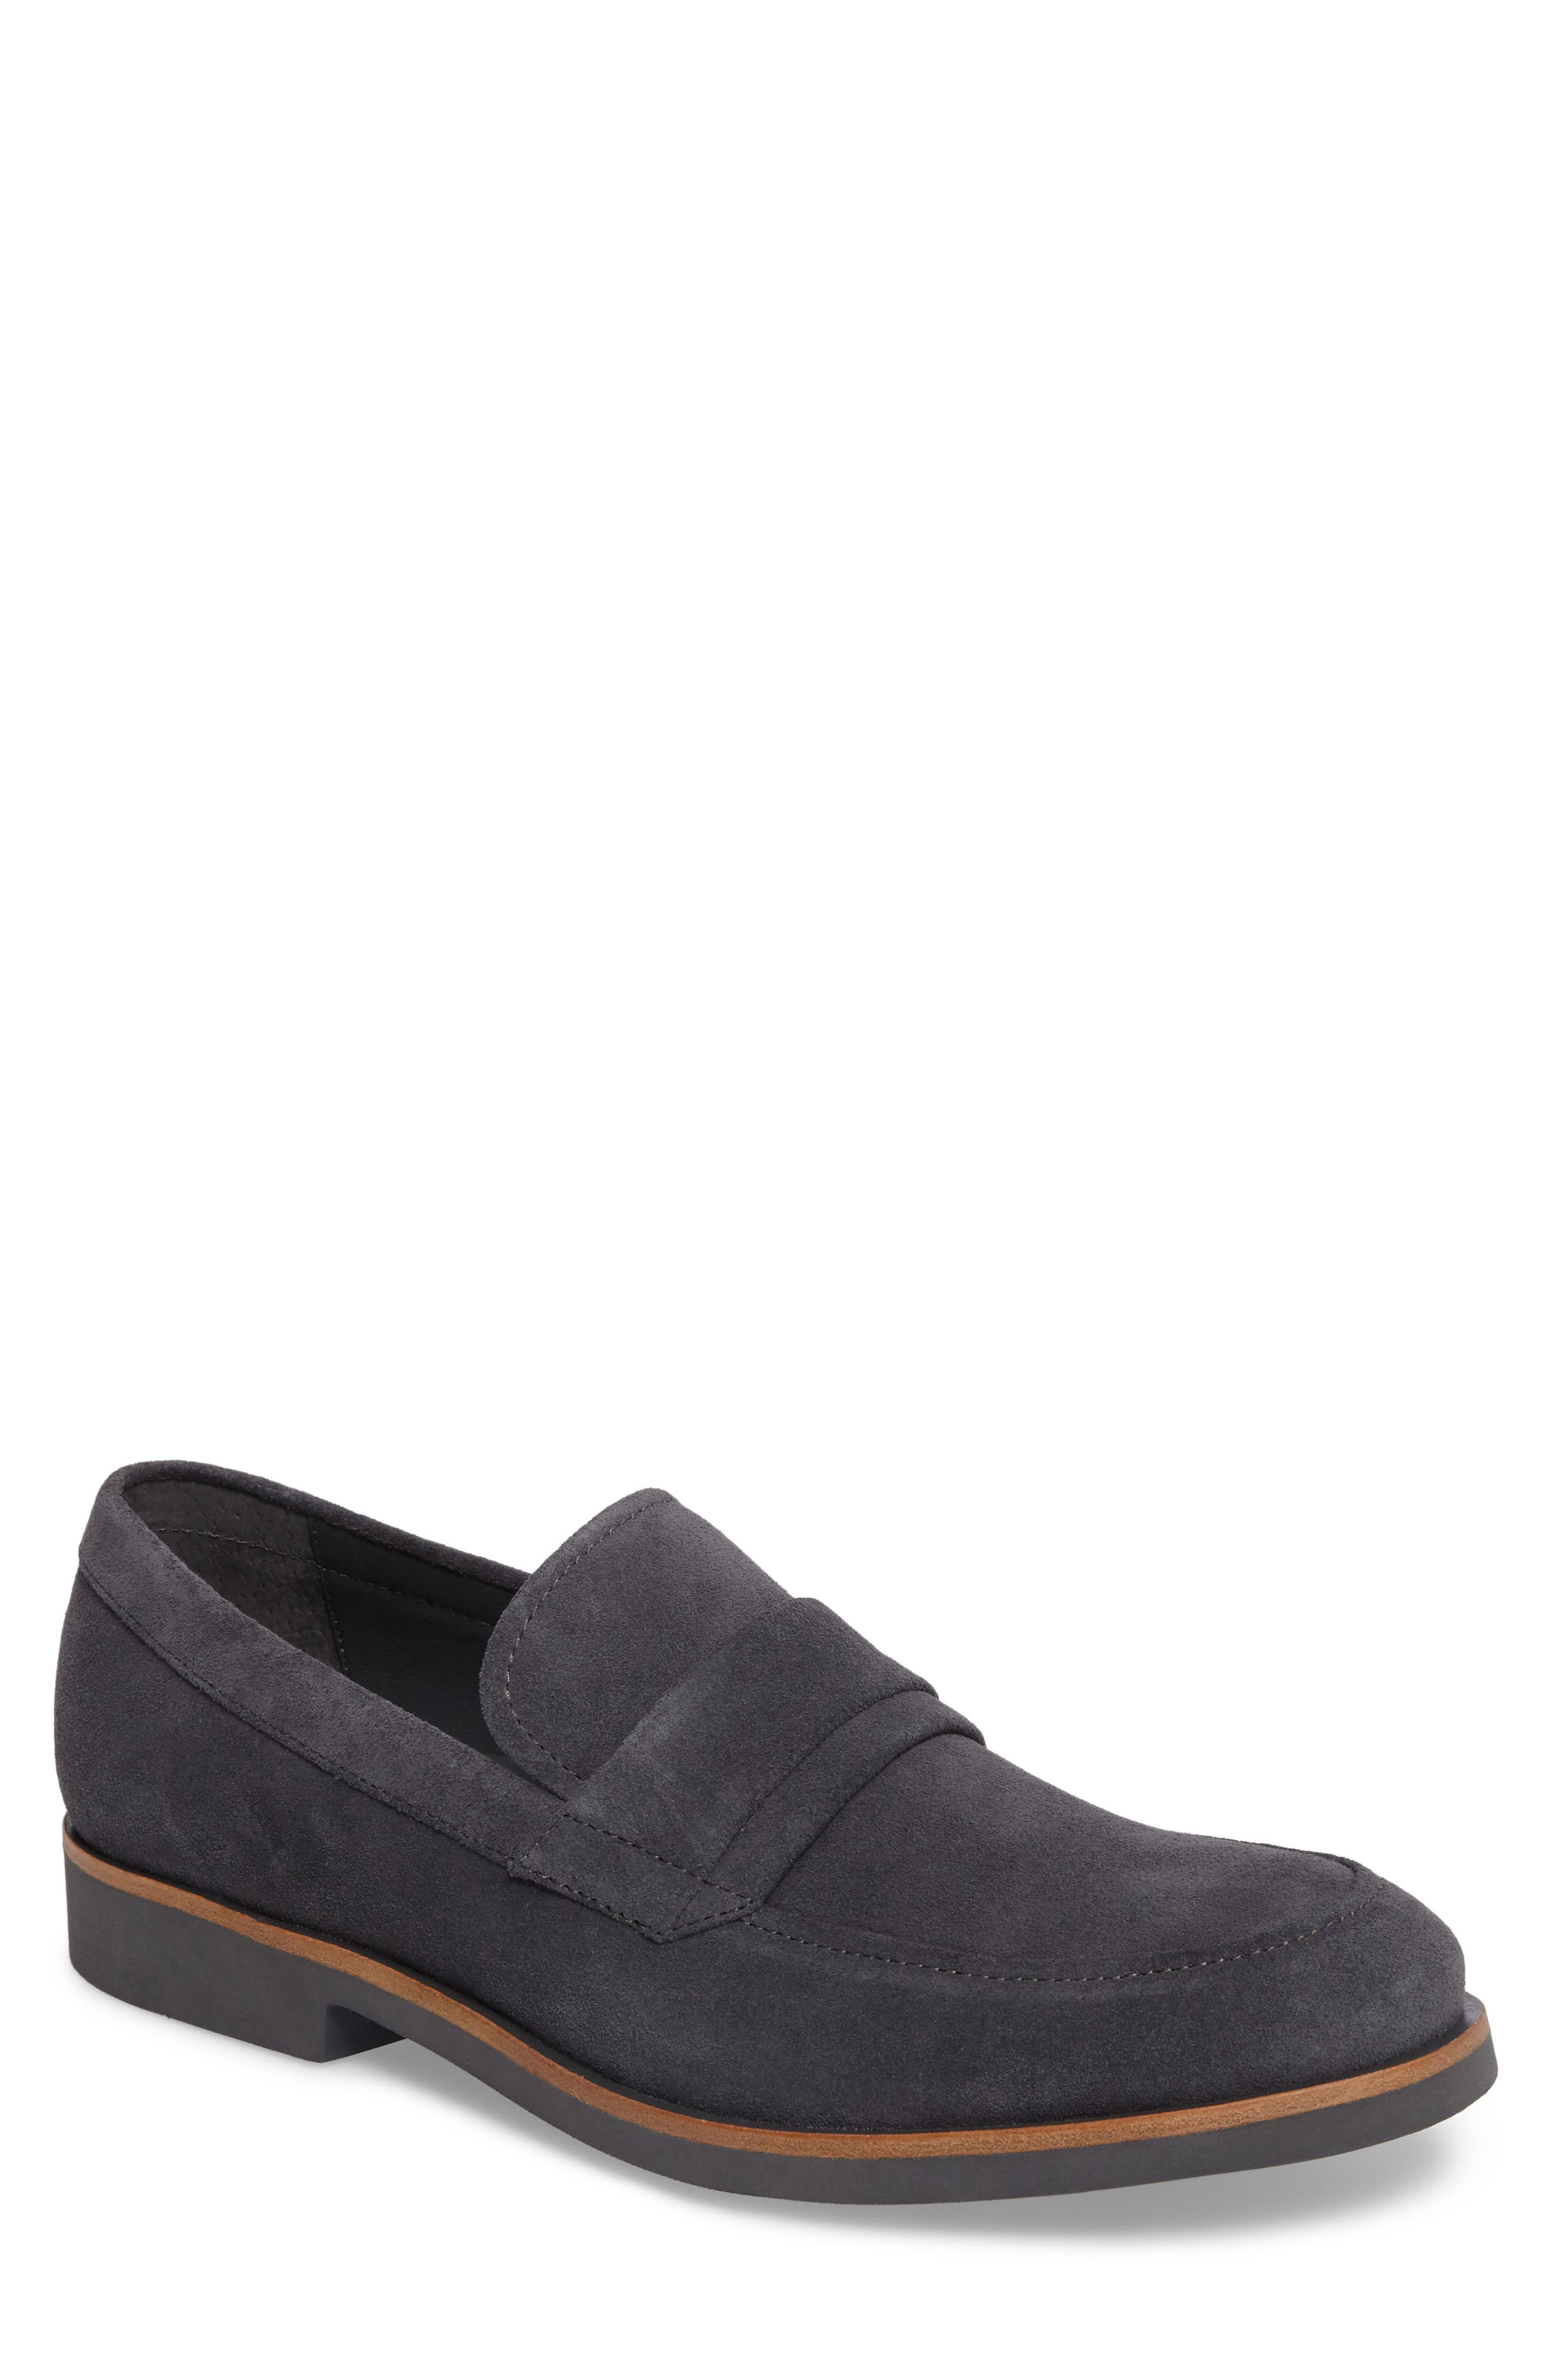 CALVIN KLEIN Forbes Loafer